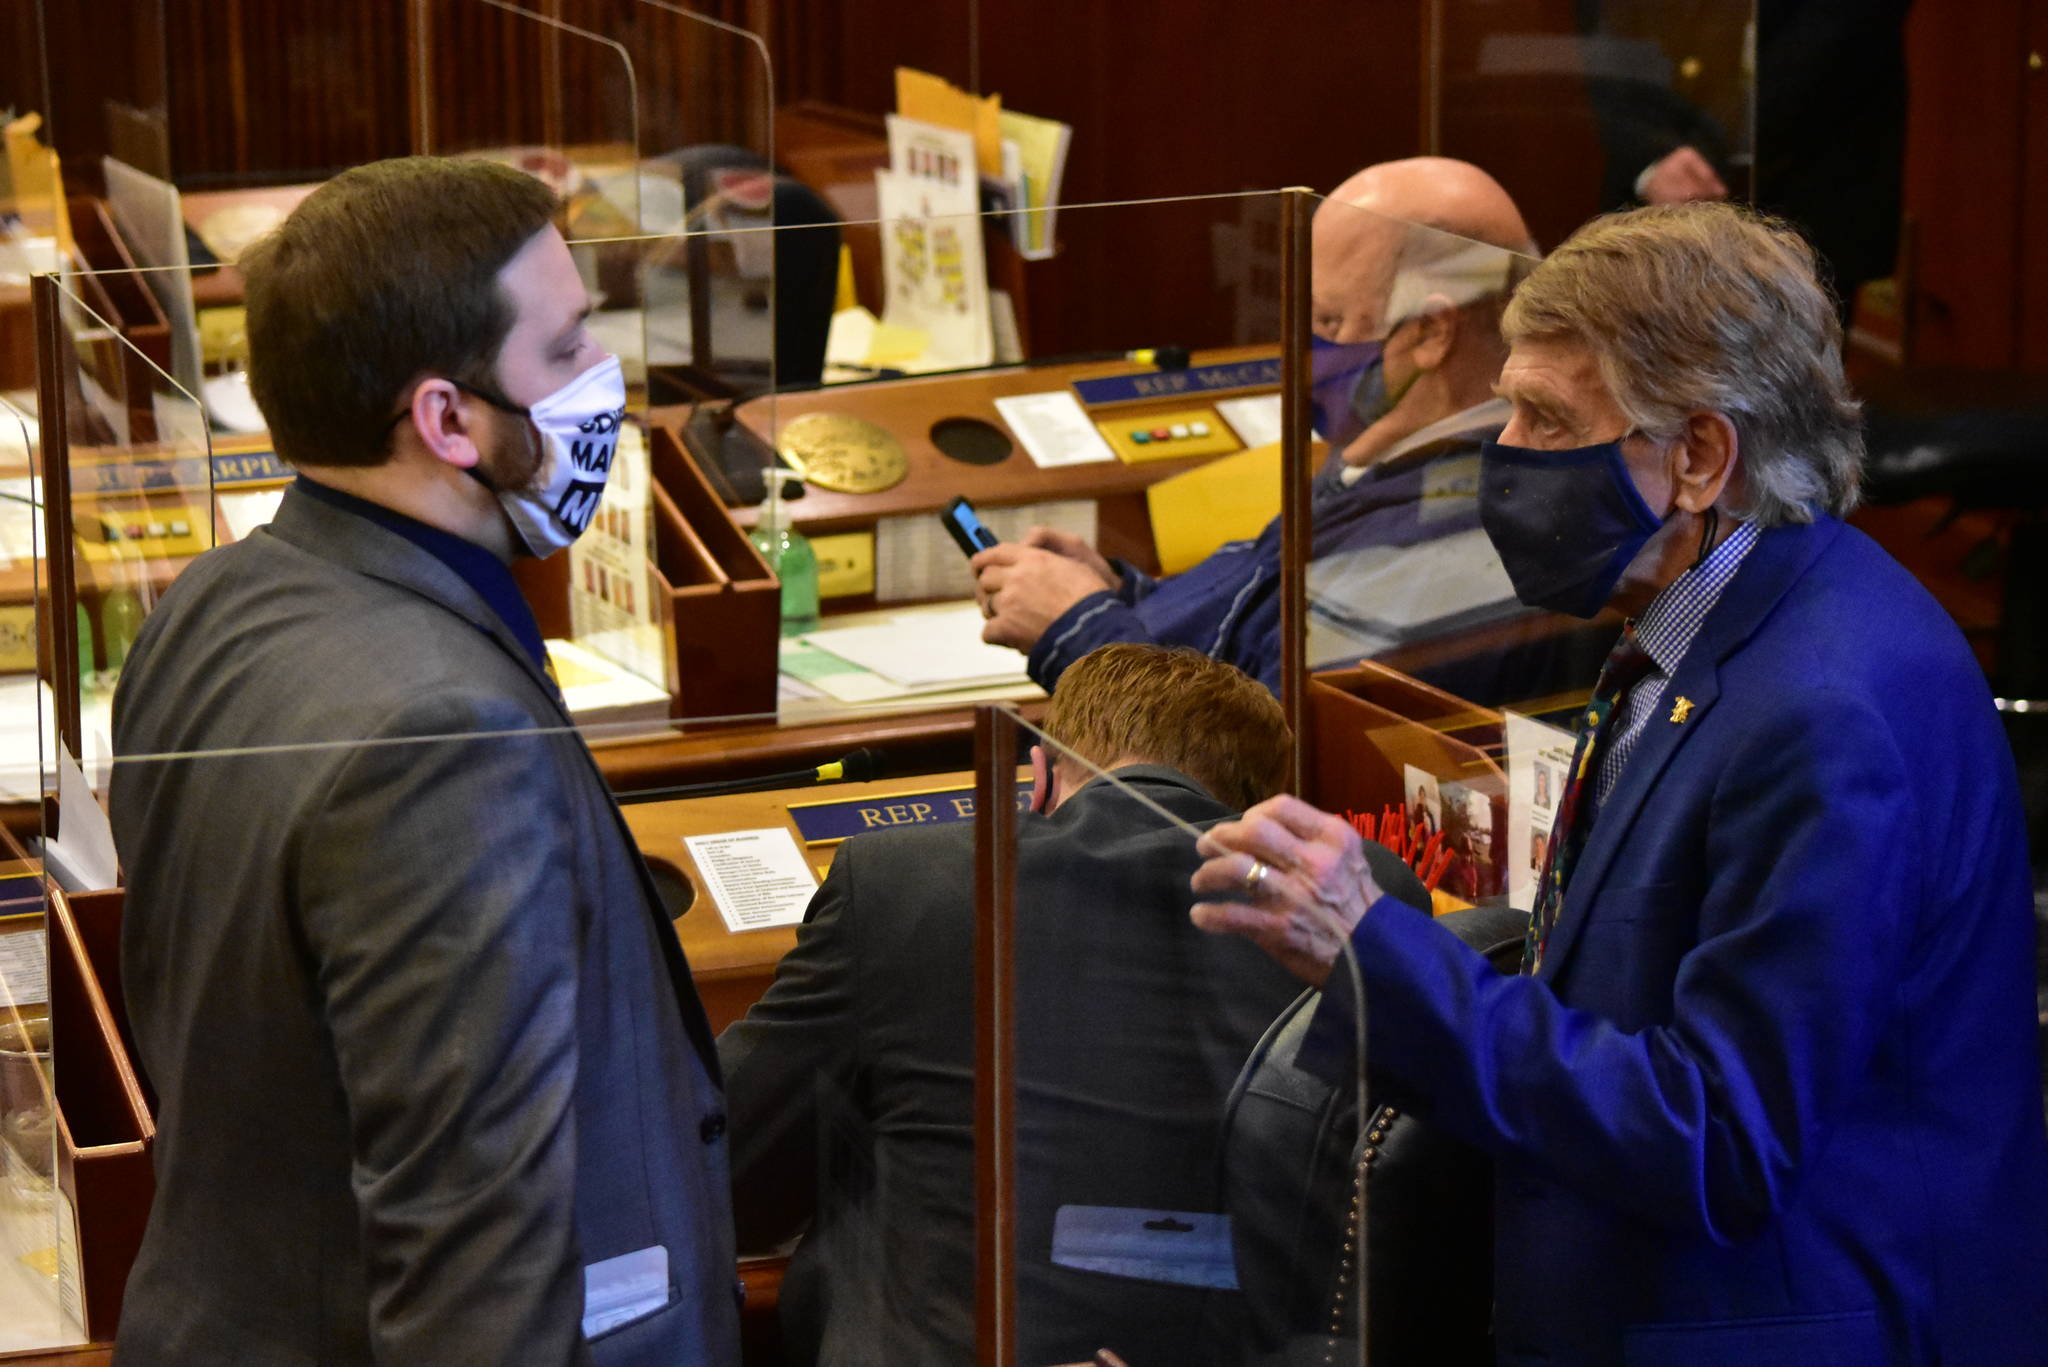 House Minority Whip Rep. Laddie Shaw, R-Anchorage, speaks to Rep. Chris Kurka, R-Wasilla on Friday, March 19, 2021. (Peter Segall / Juneau Empire)